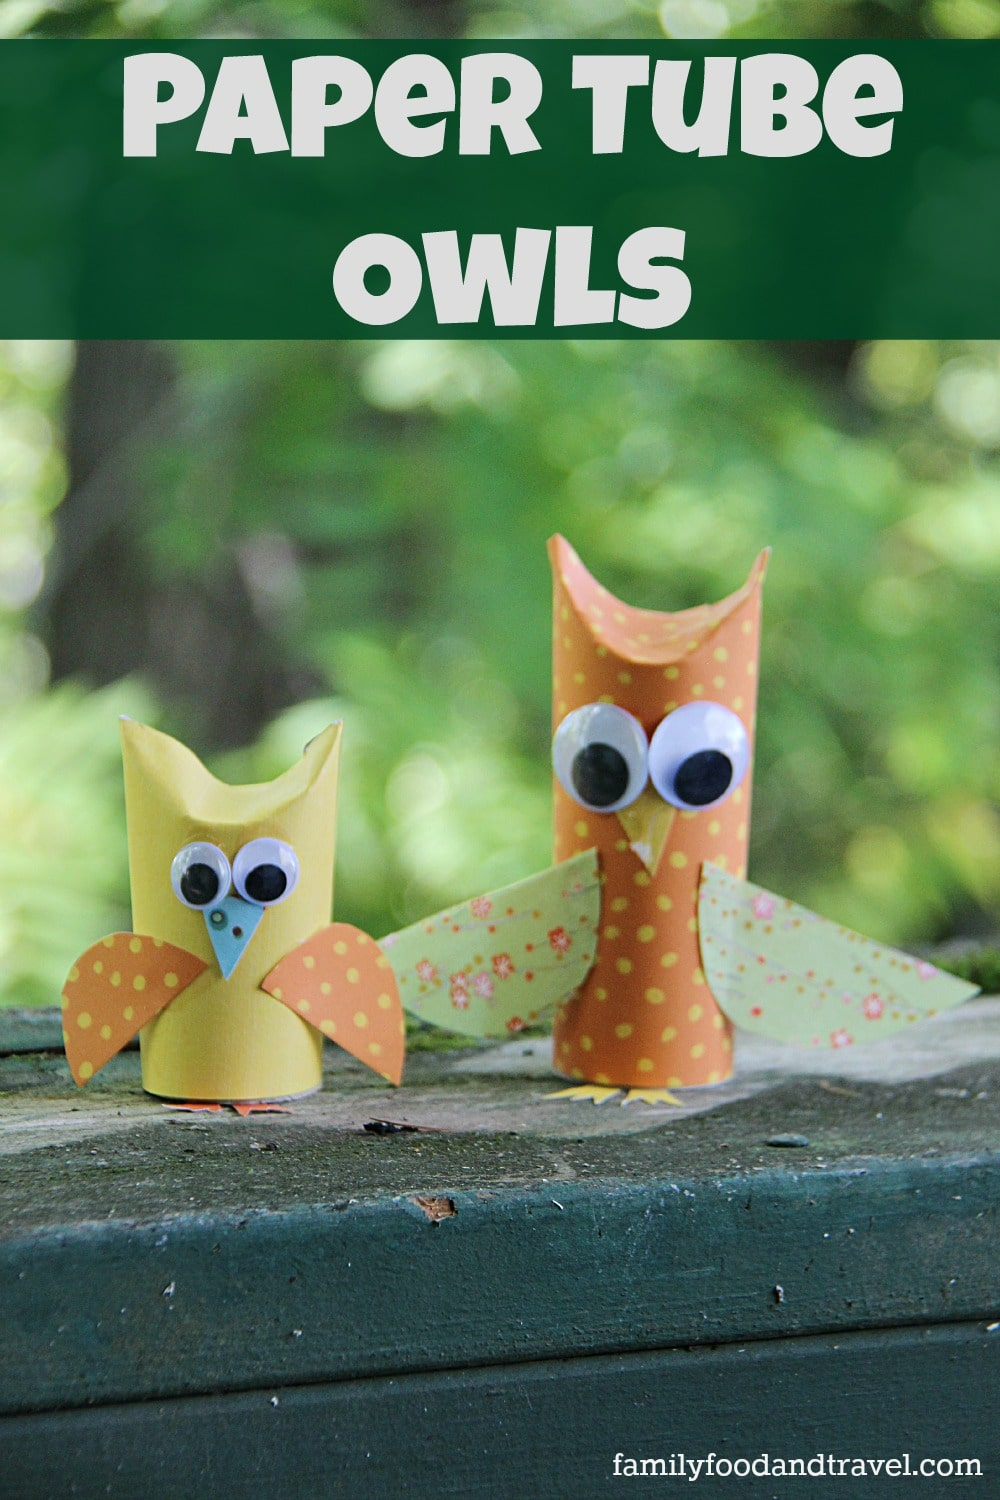 Paper Tube Owls